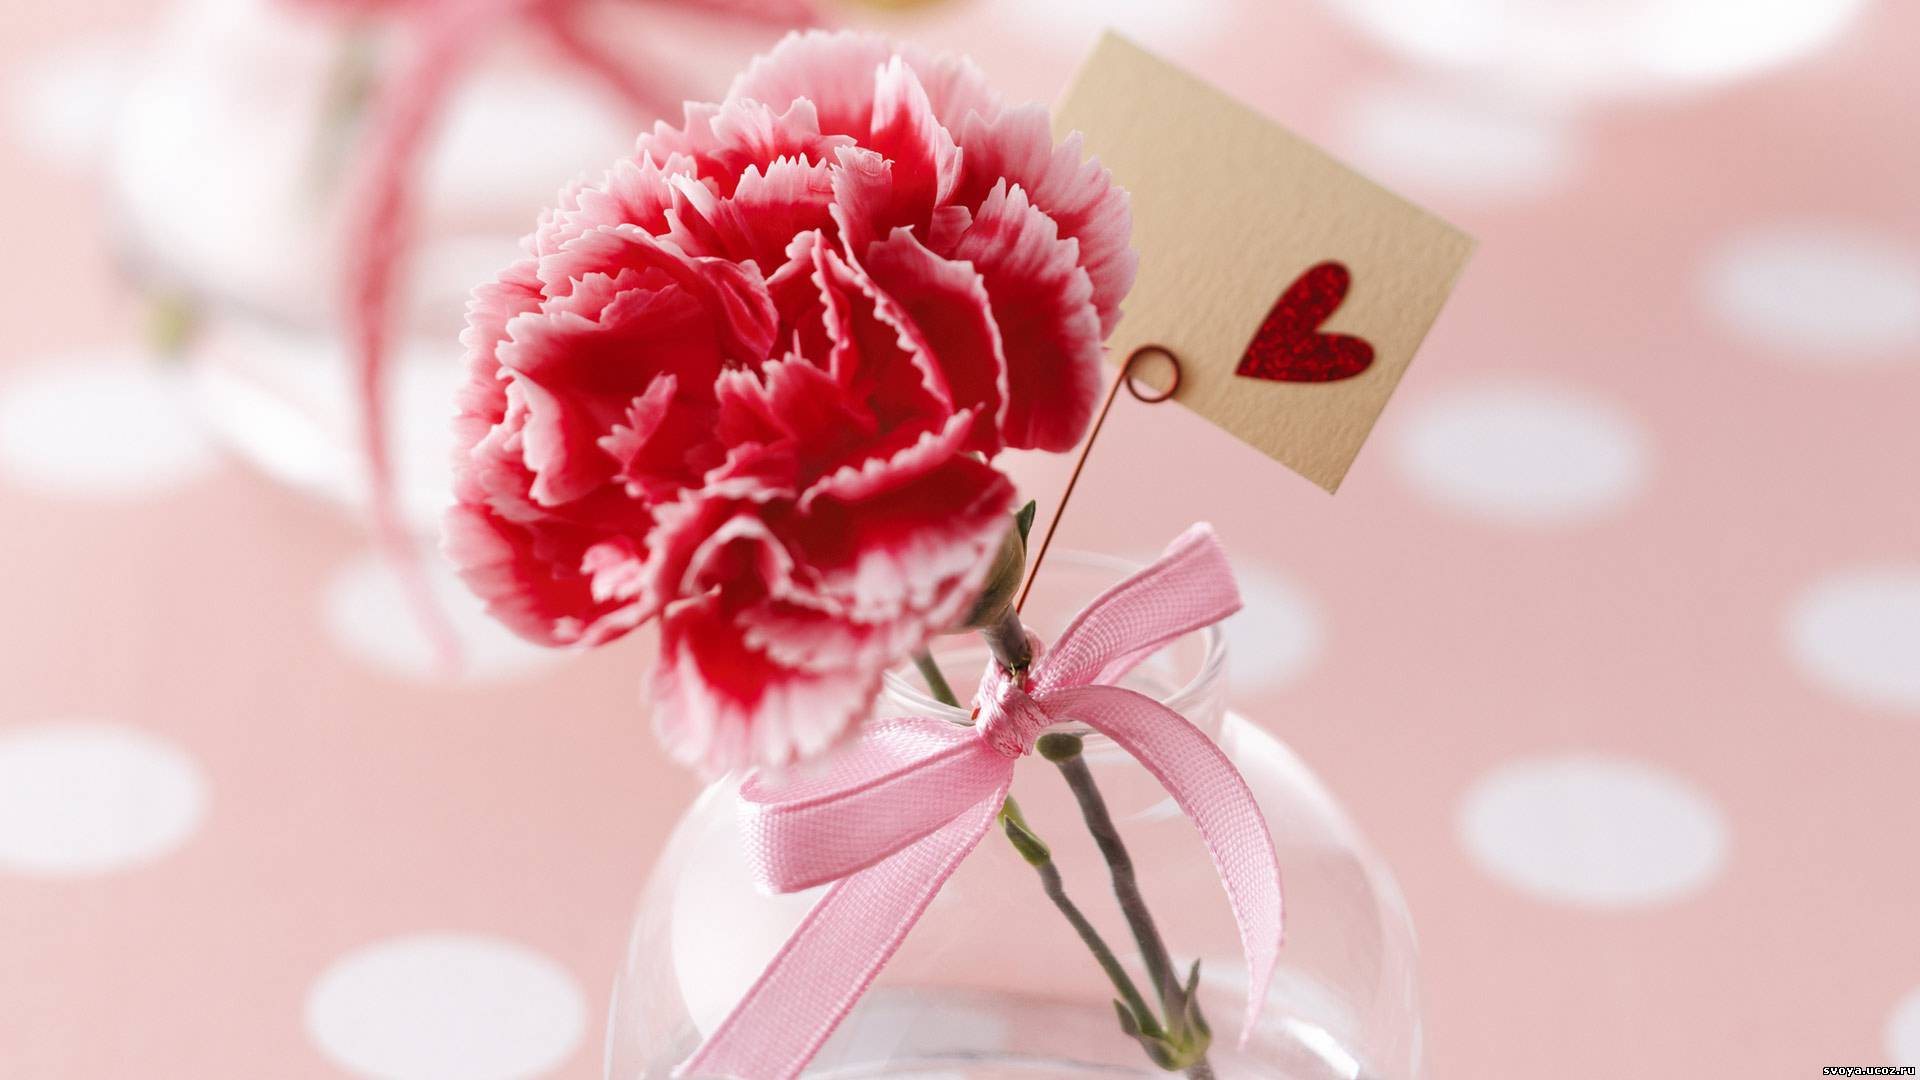 16966 download wallpaper Holidays, Plants, Flowers, Hearts, Love, Valentine's Day, Carnations screensavers and pictures for free